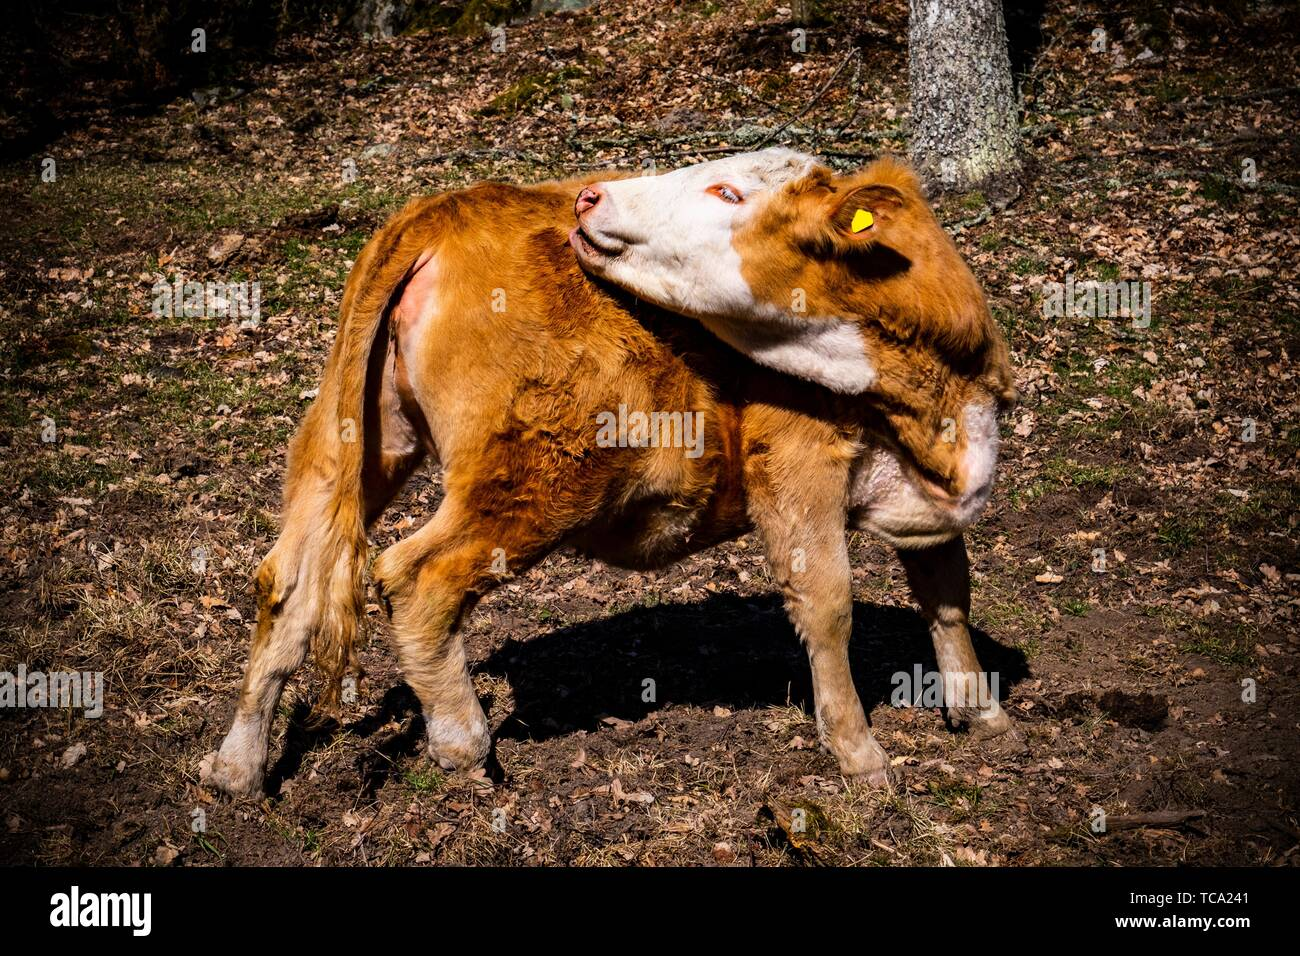 Young calf in the forest of Sweden. - Stock Image